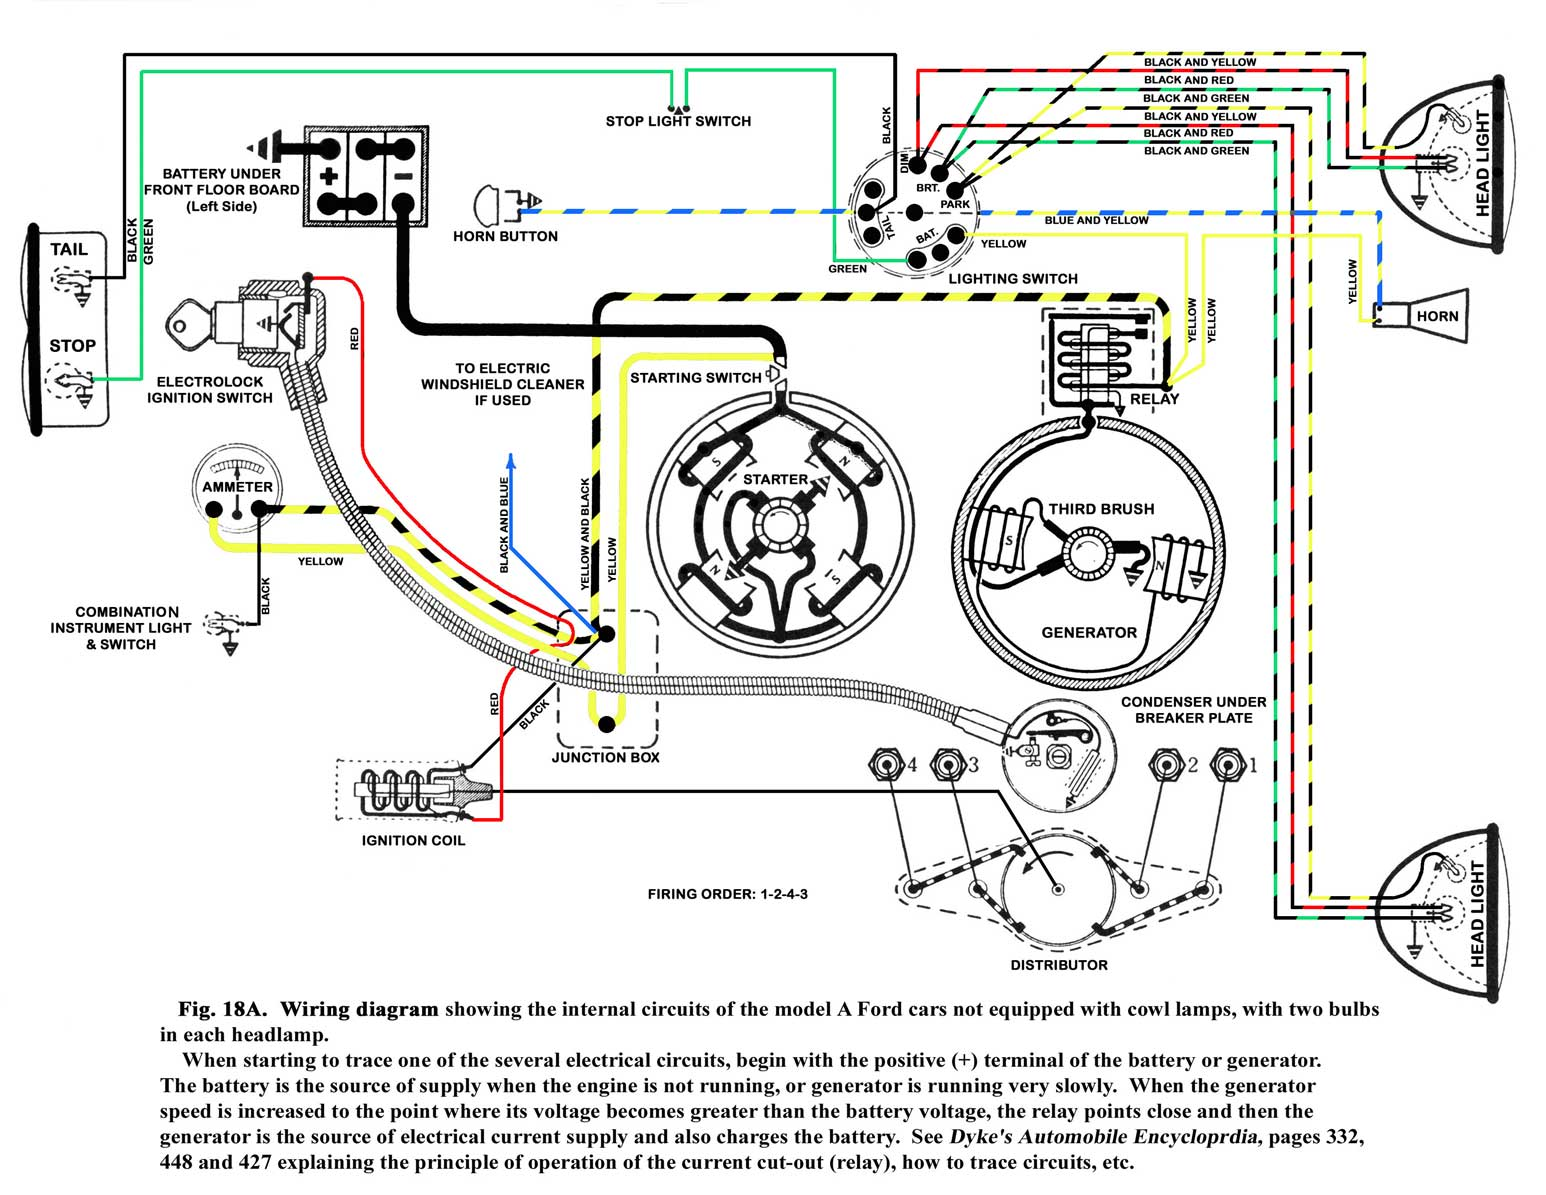 medium resolution of 30 model a wire diagram wiring diagram detailed model a ford generator wiring 30 model a wire diagram